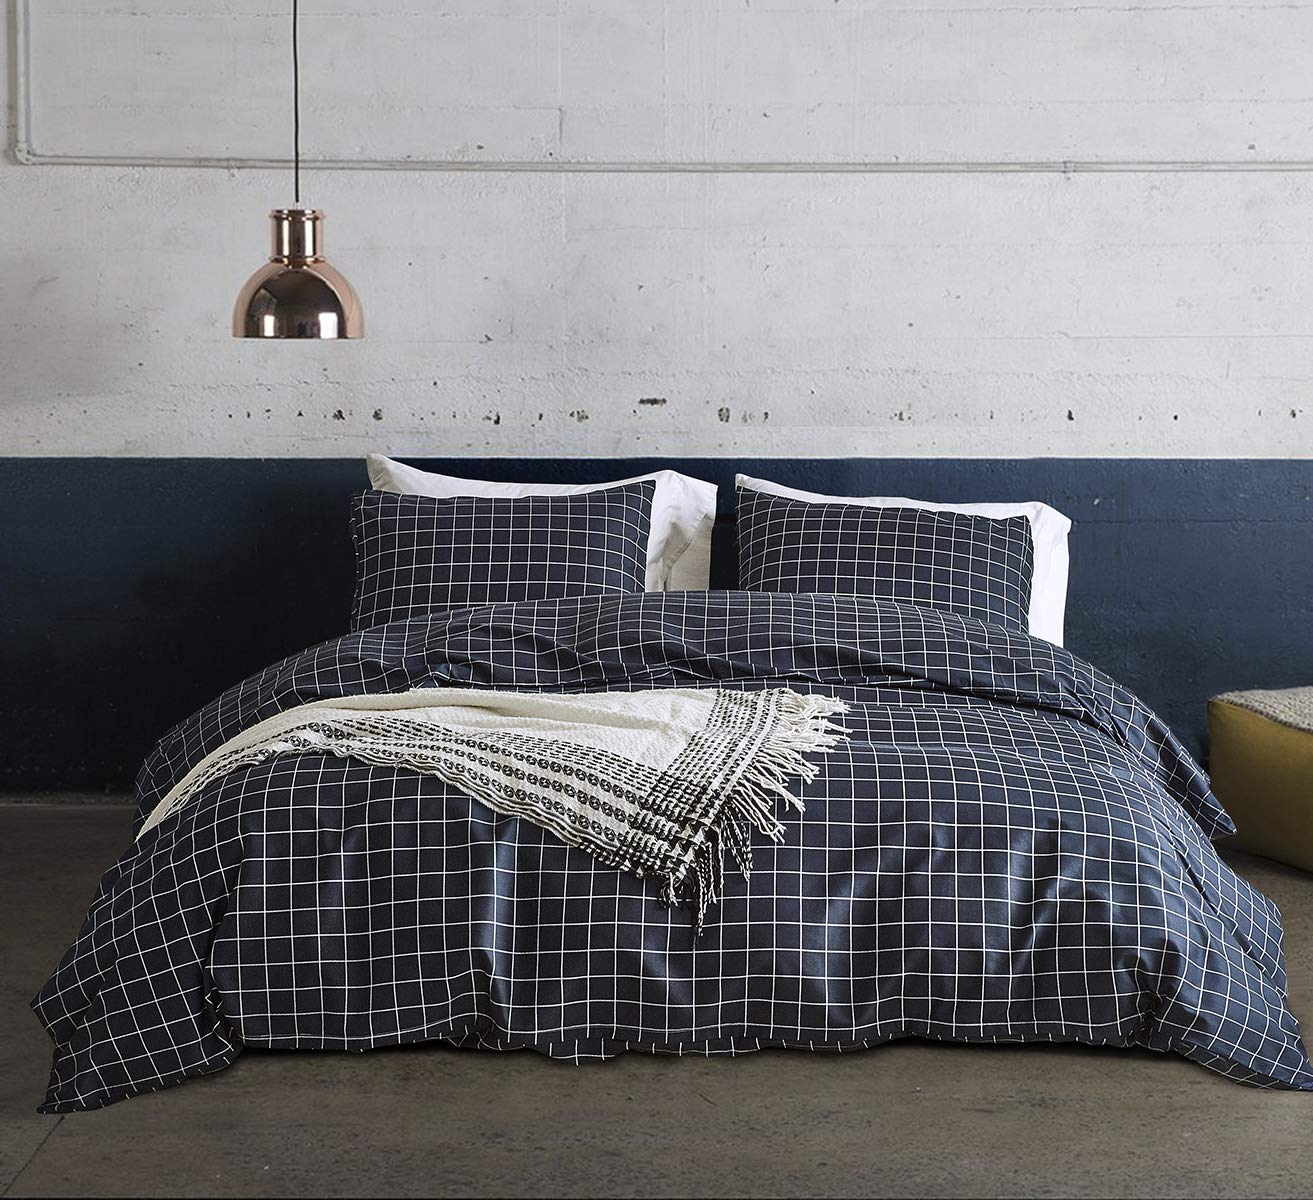 CoutureBridal Grid Pattern Duvet Cover Sets Twin Boys Navy Gingham Geometric Checkered Printed Reversible Mens Bedding Quilt Cover Set 3 Pieces-1 Duvet Cover+1 Pillowcase